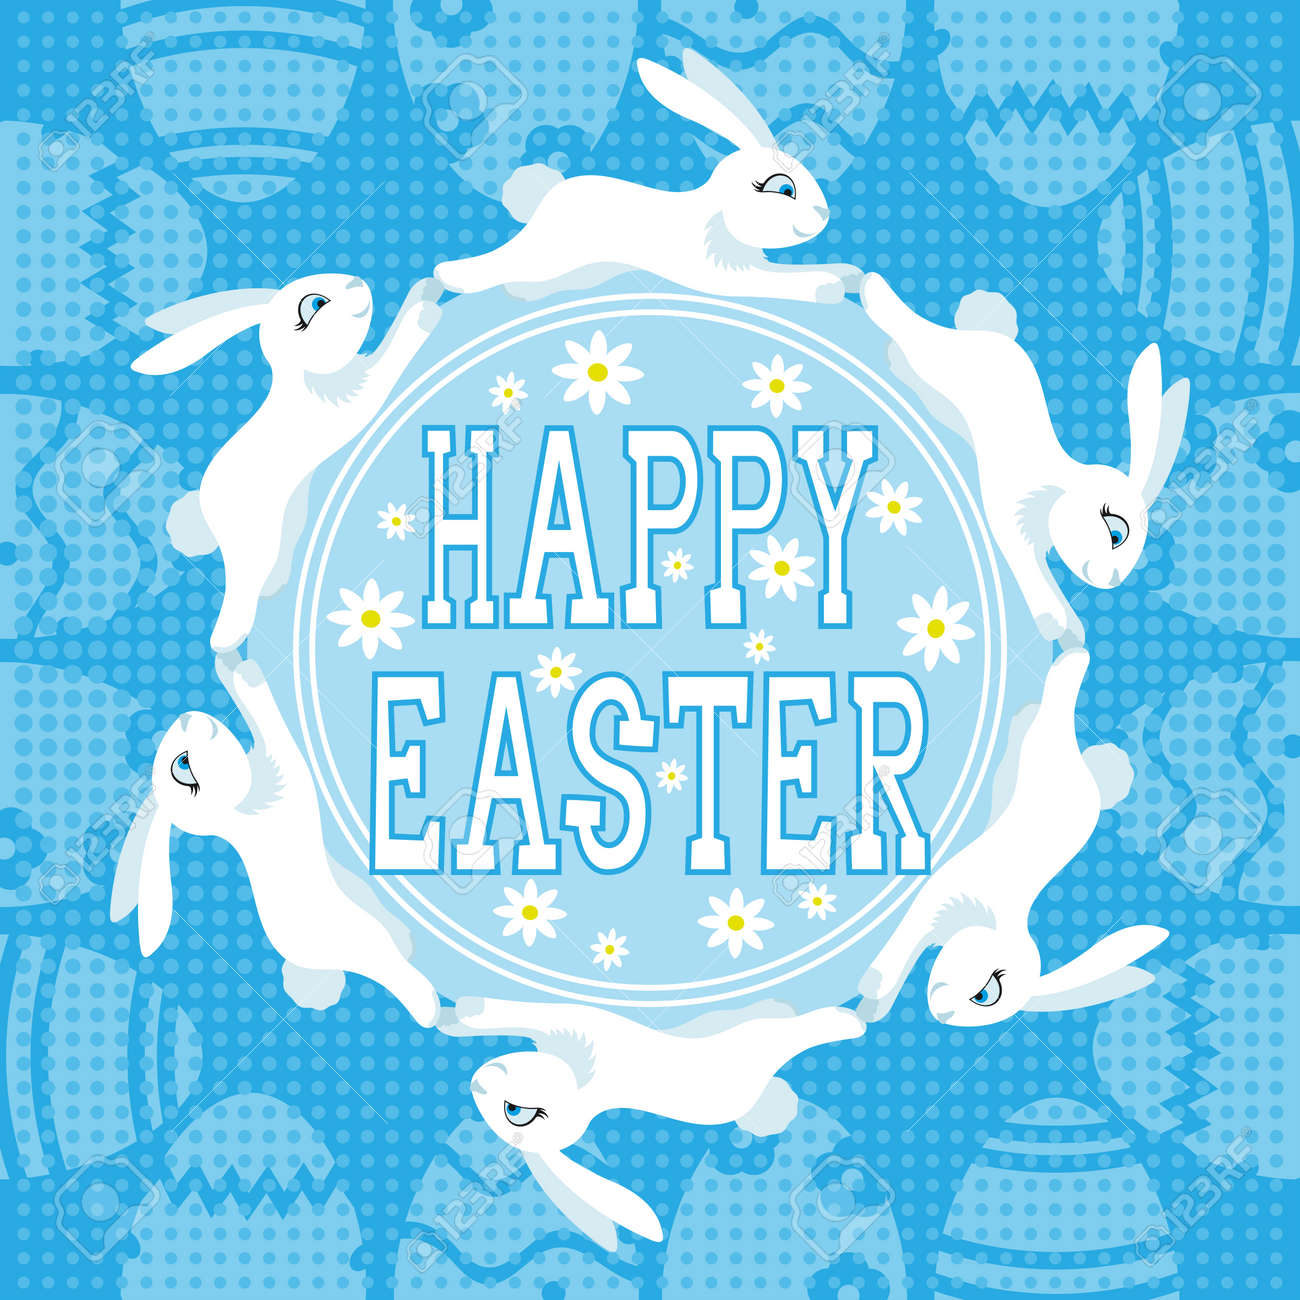 Happy Easter banner with Easter bunnies on blue background. - 167343358